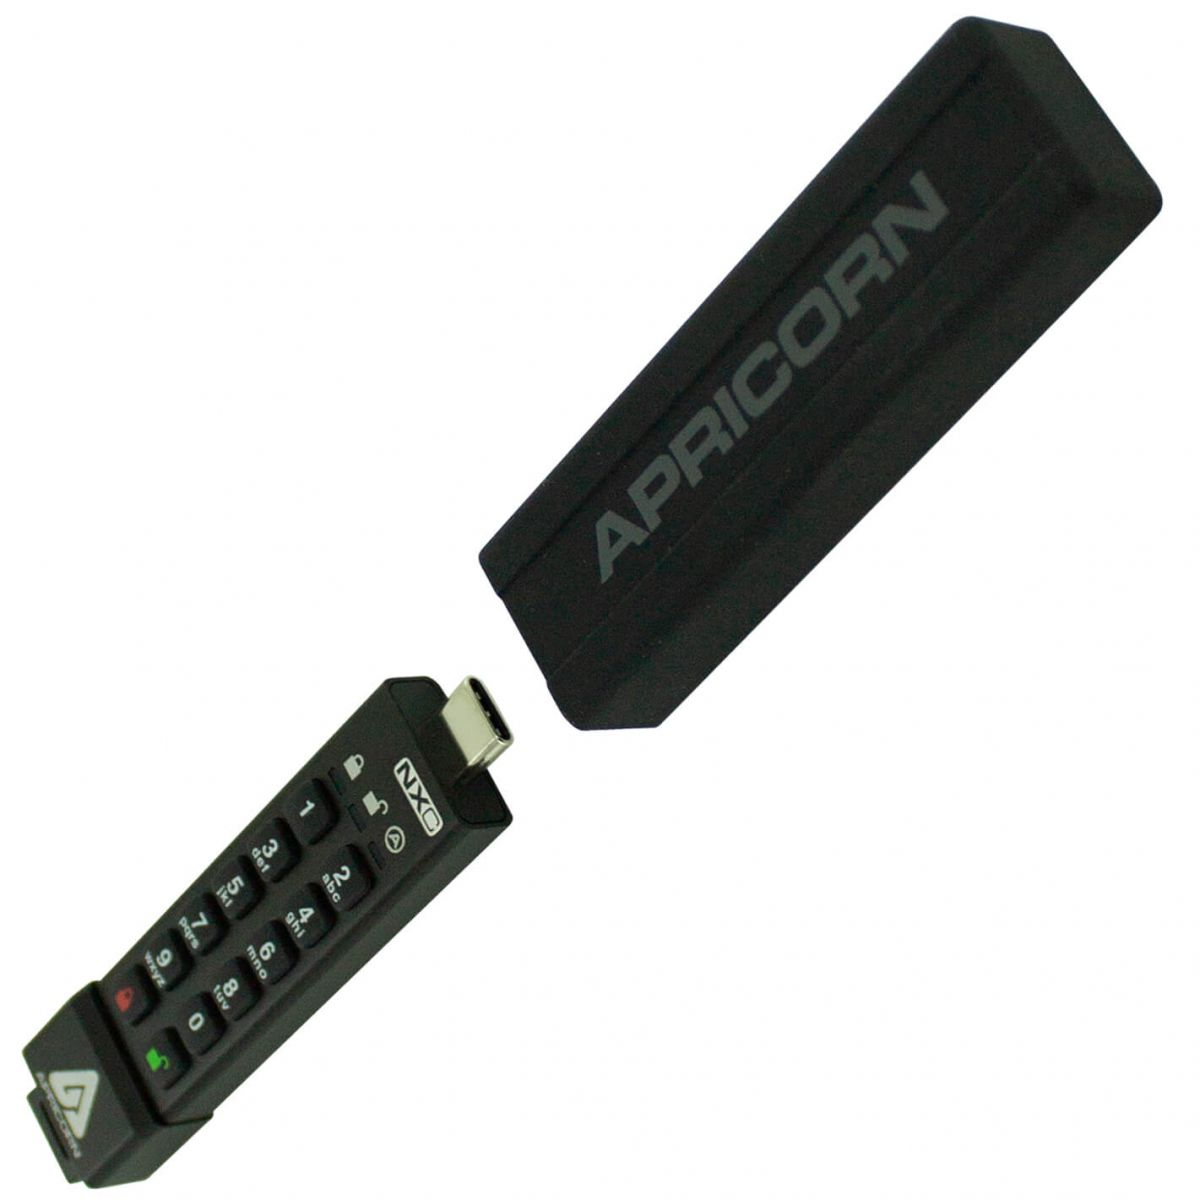 ask3nxc 128gb usbstick with usbc